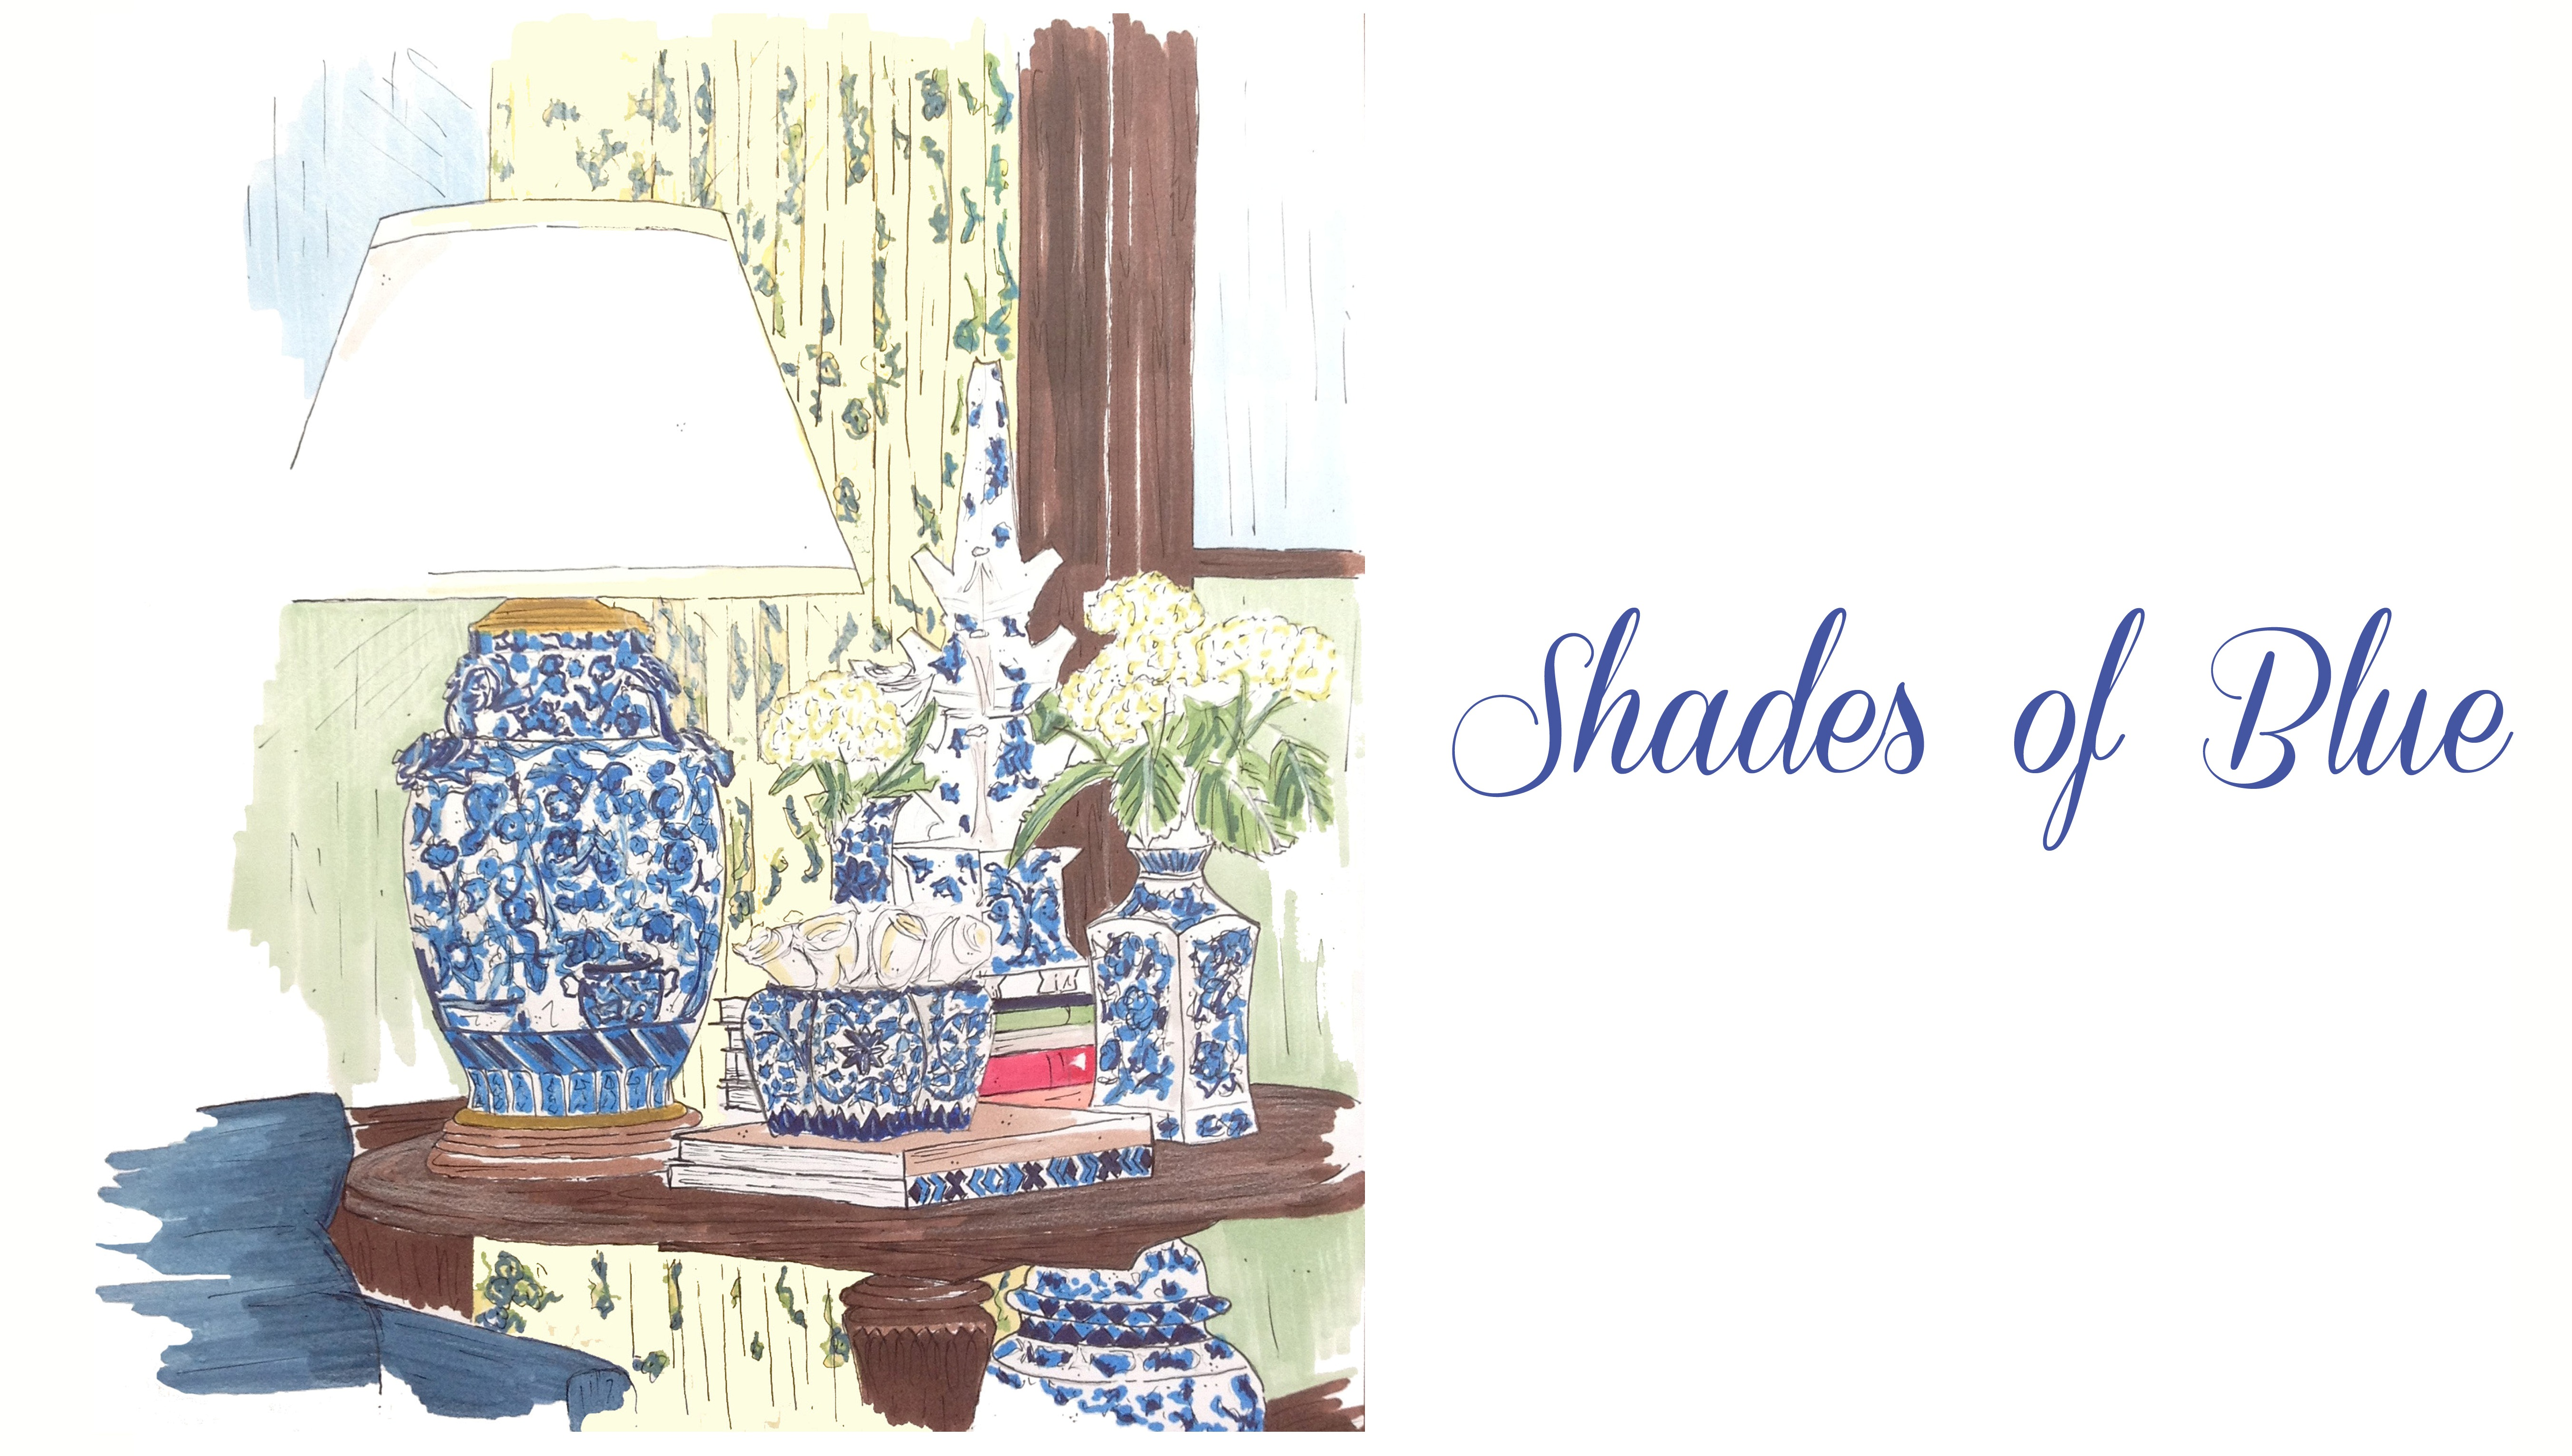 north carolina interior designer of asheville kathryn greeley designs uses shades of blue ralph lauren fabrics to inspire her clients and readers